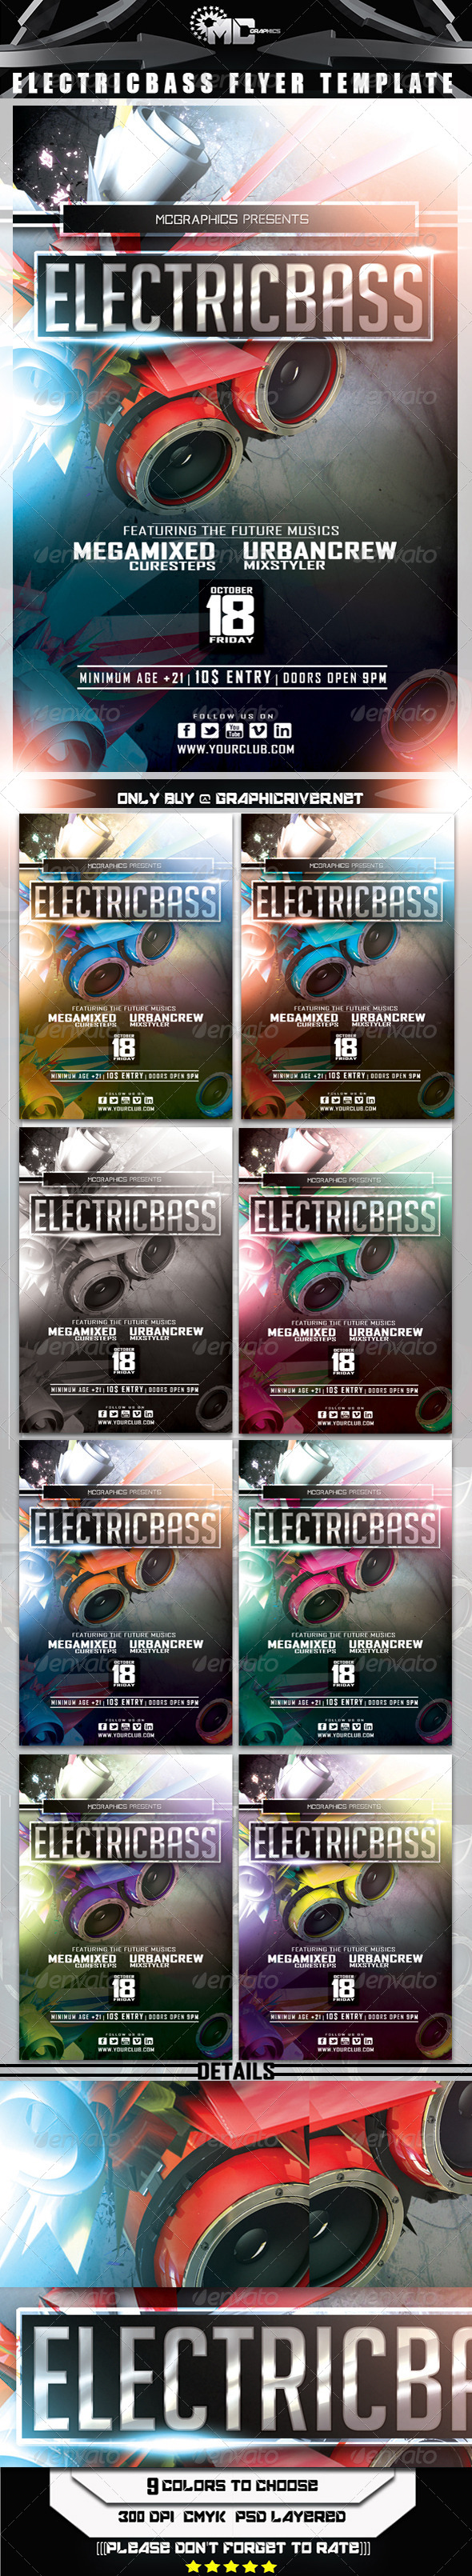 GraphicRiver Electric Bass Fyer Template 5312528